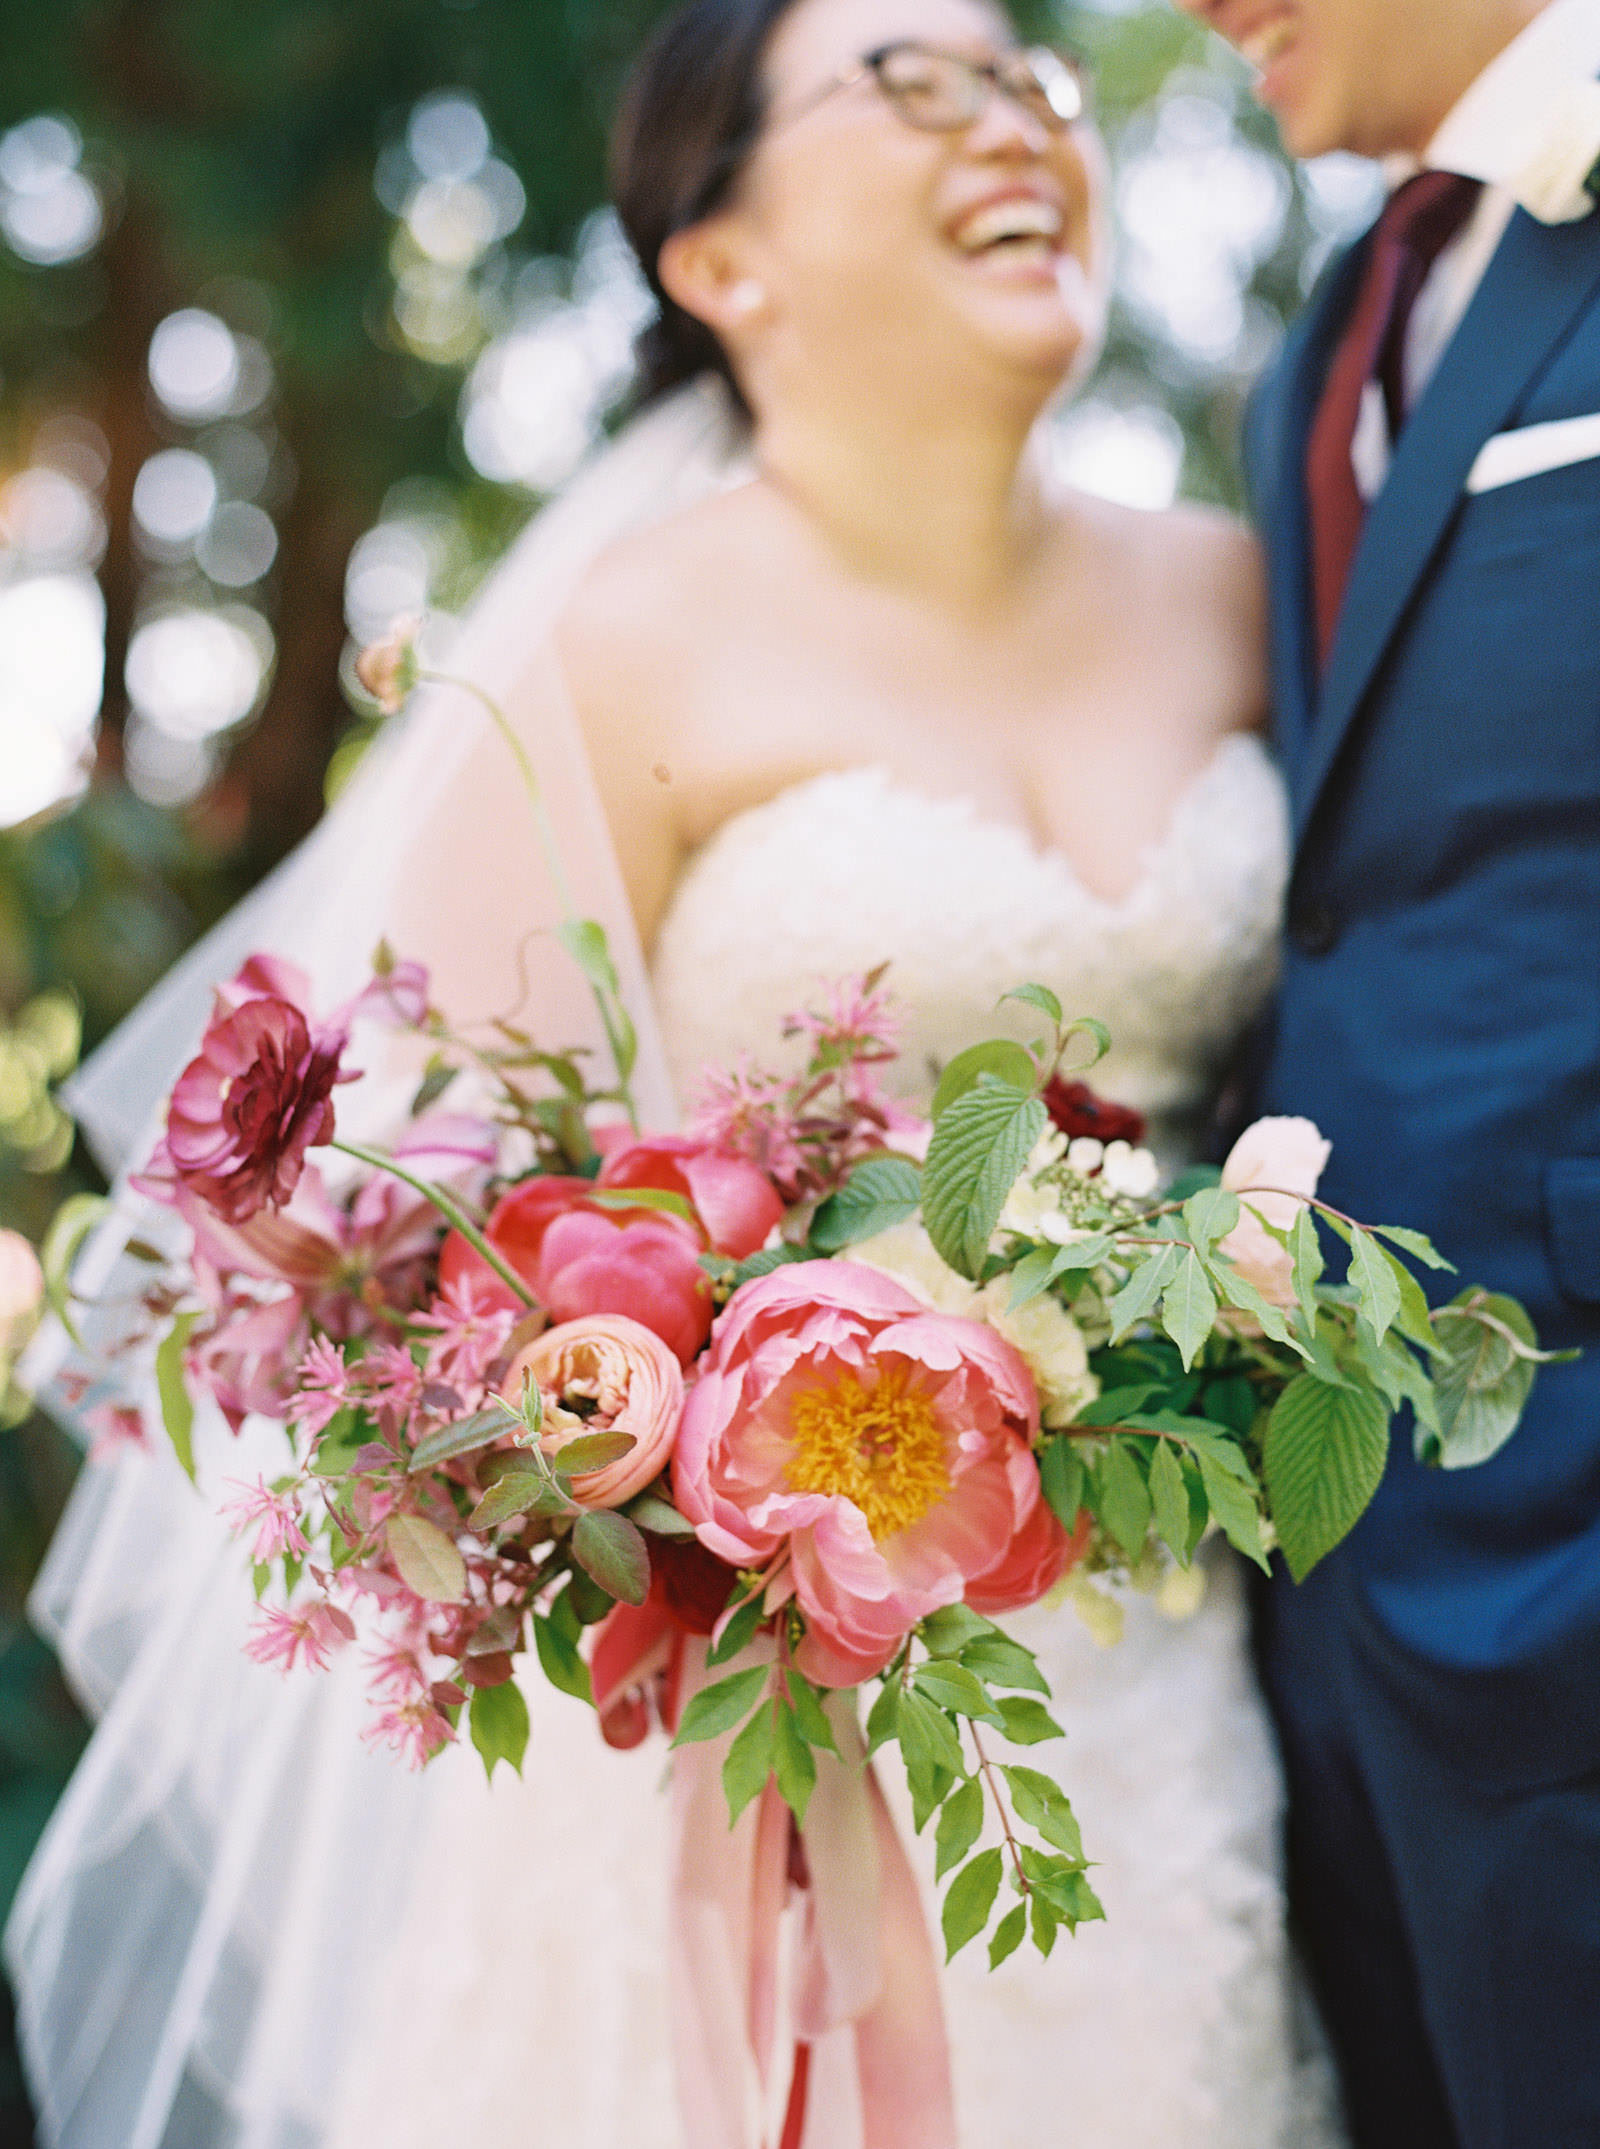 Wedding Bouquet with Peonies at an elegant DeLille Cellars Wedding captured by Top Seattle Wedding Photographer Anna Peters